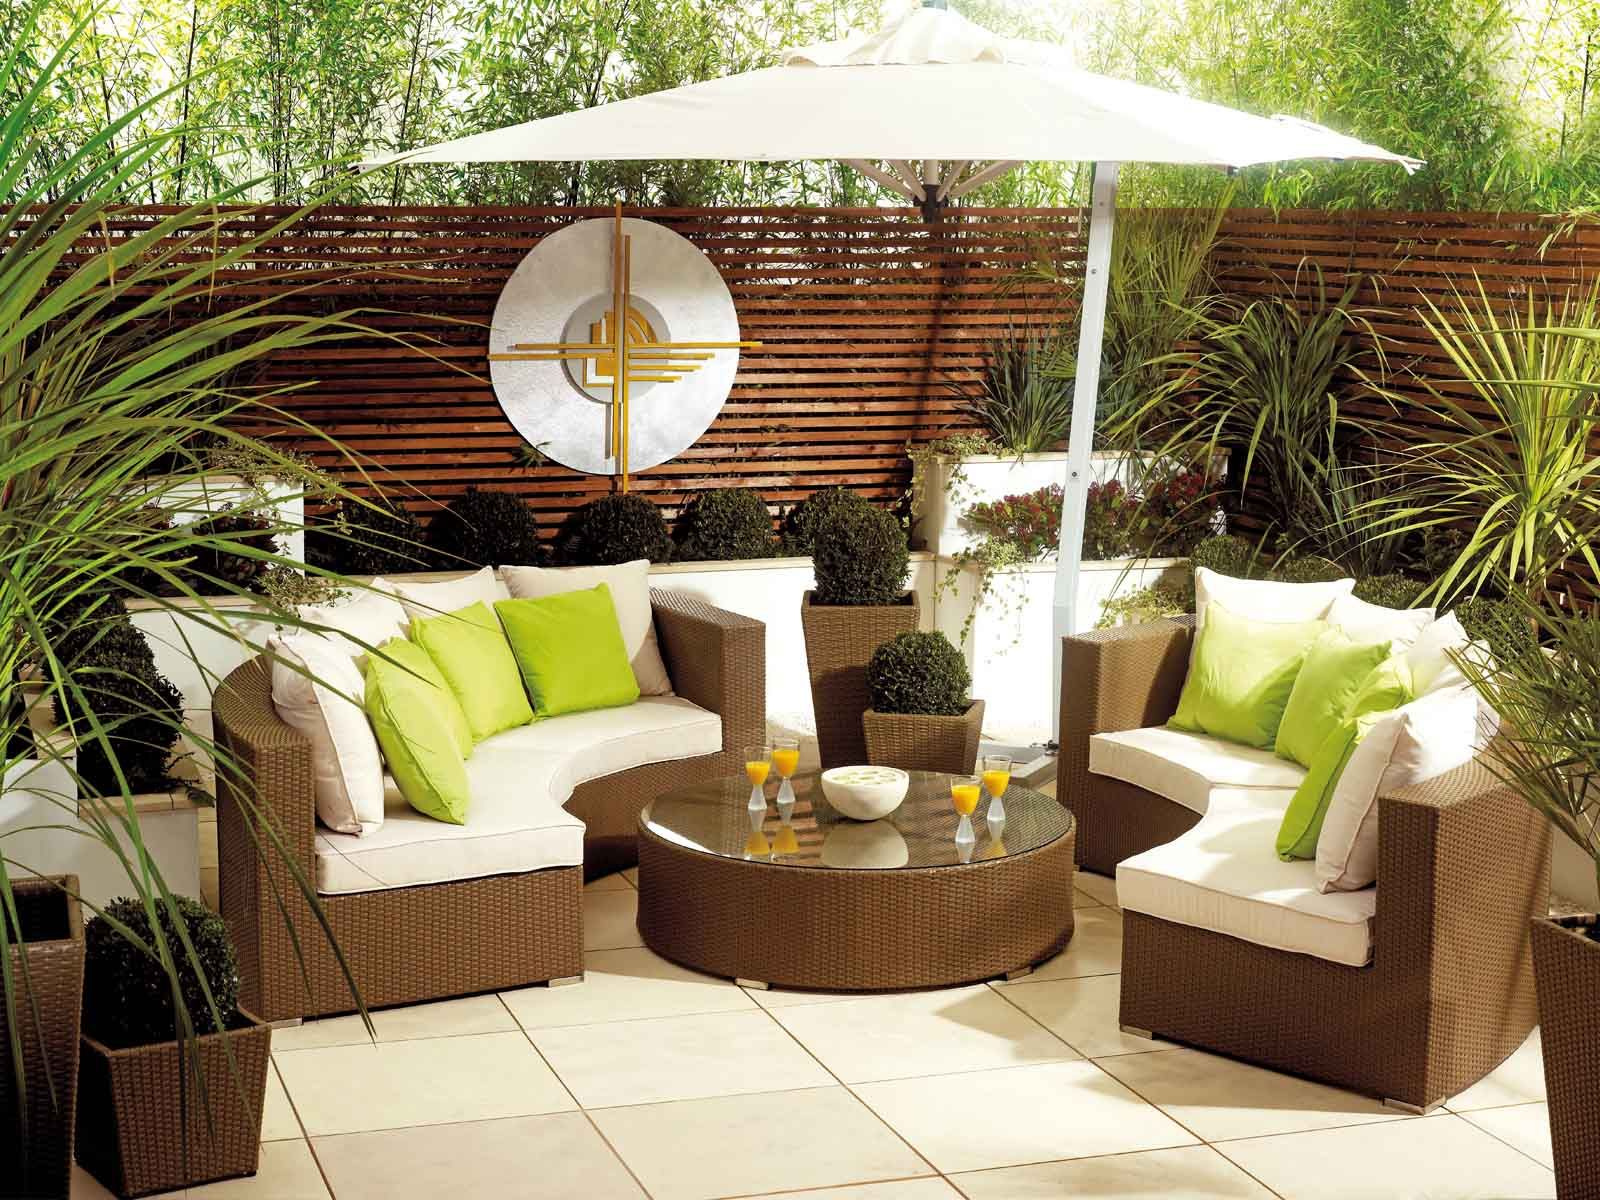 20 beautiful outdoor living room designs that will delight you rattan garden furniture modern - Small garden space ideas property ...